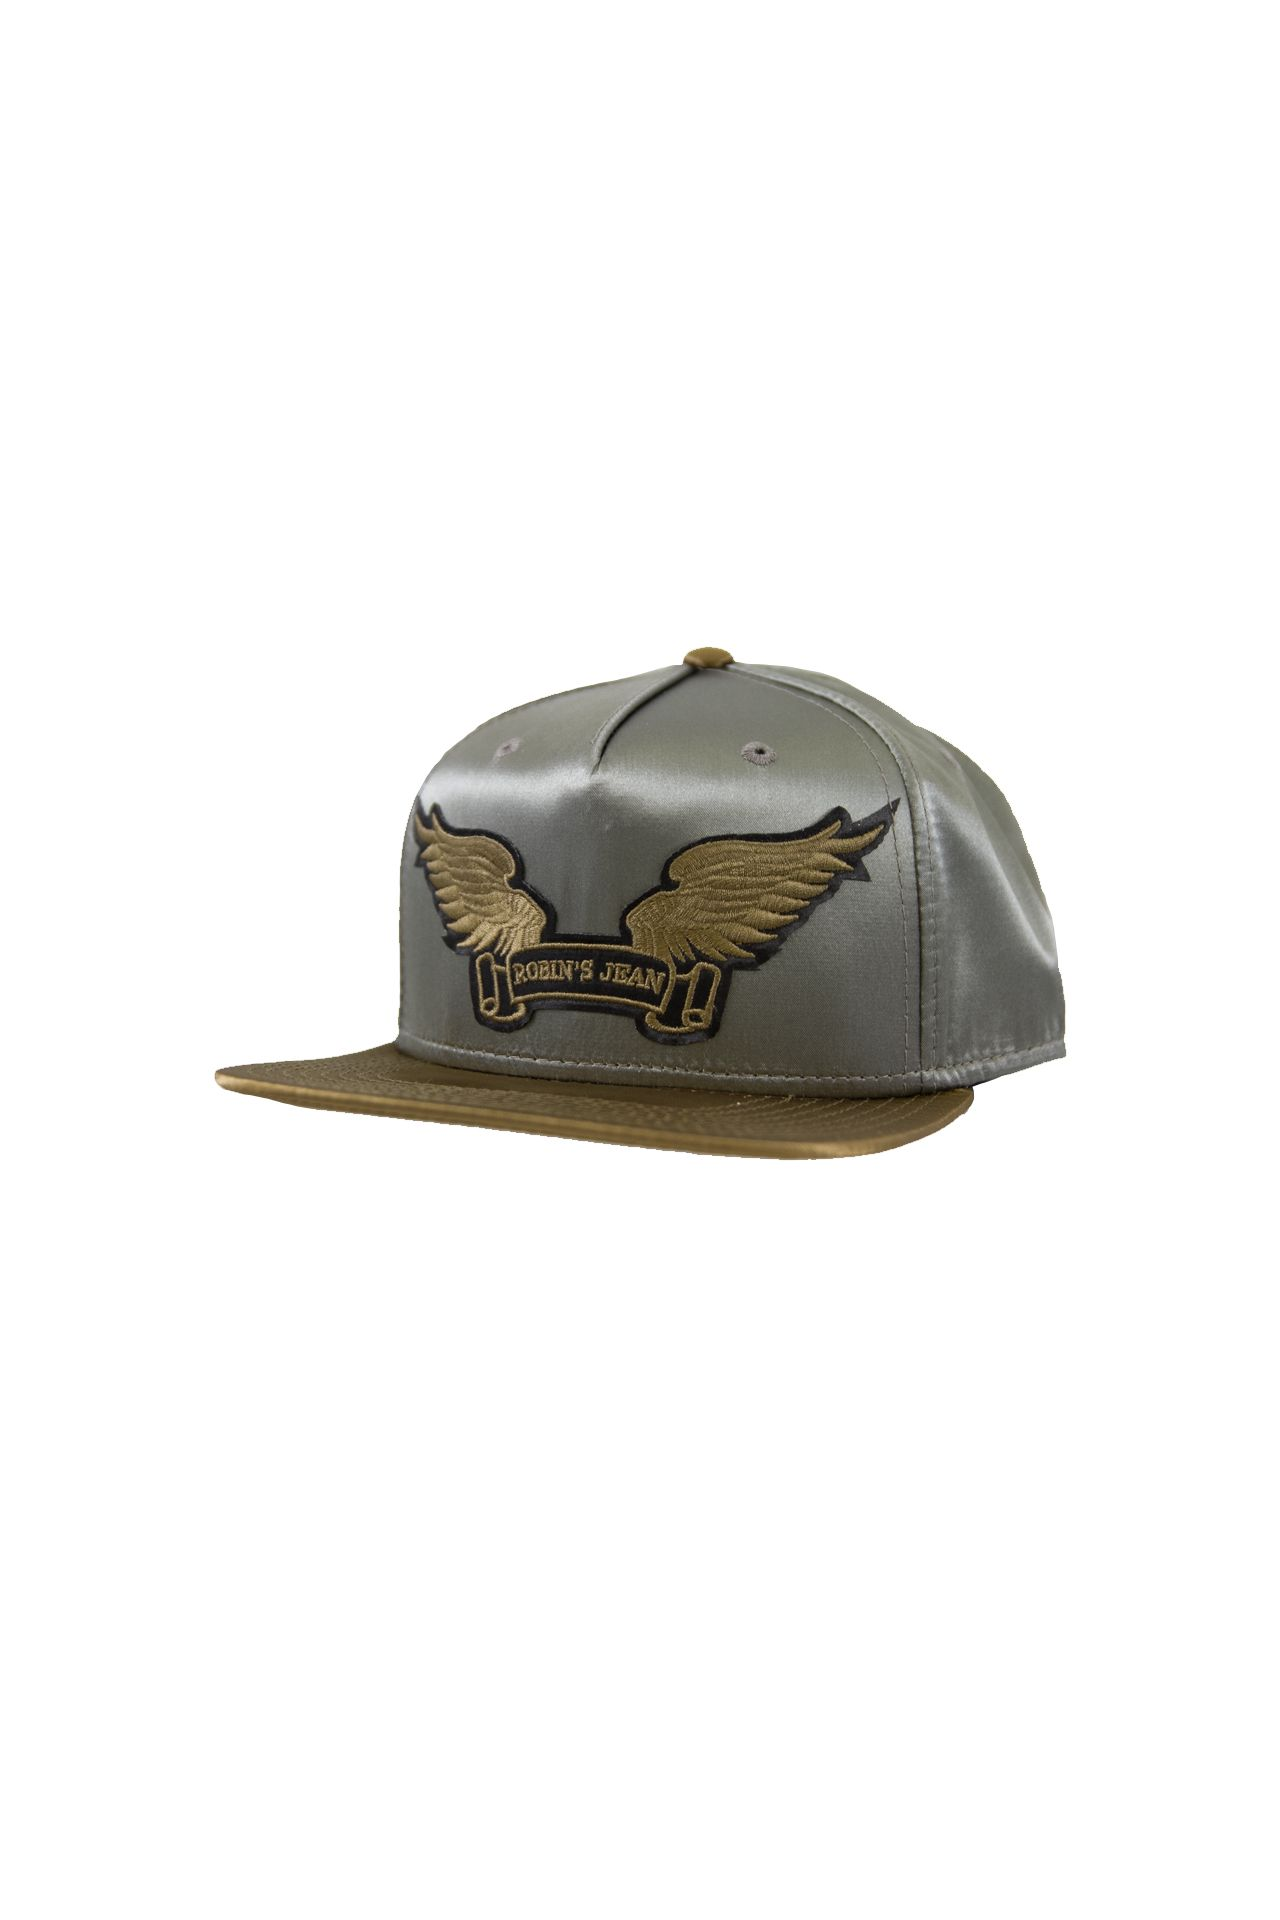 SILVER AND BROWN SATIN CAP